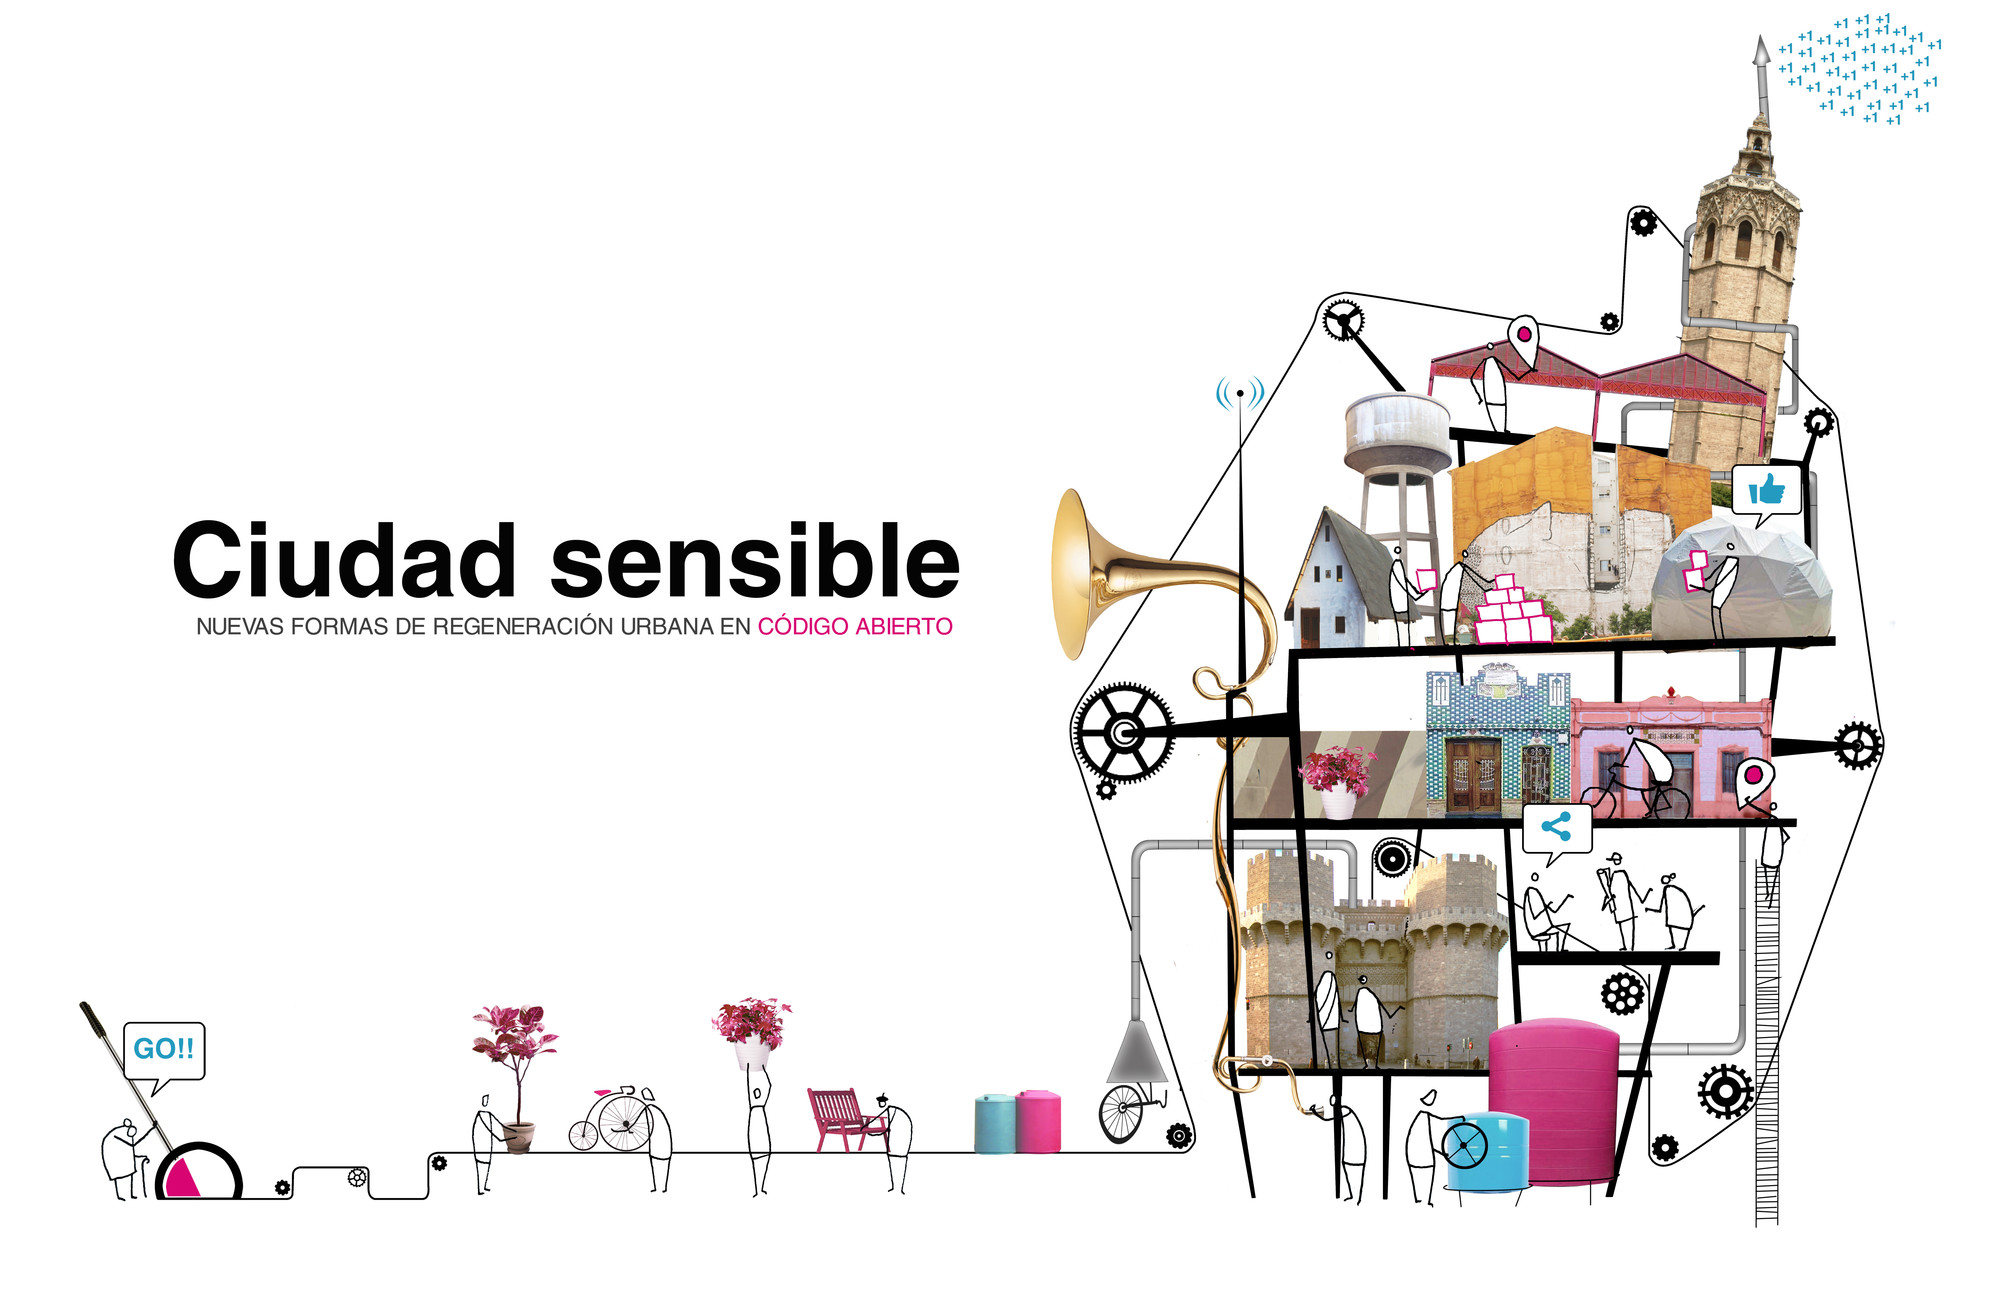 #CiudadSensible 2014 / Valencia, España, Courtesy of Carpe Via